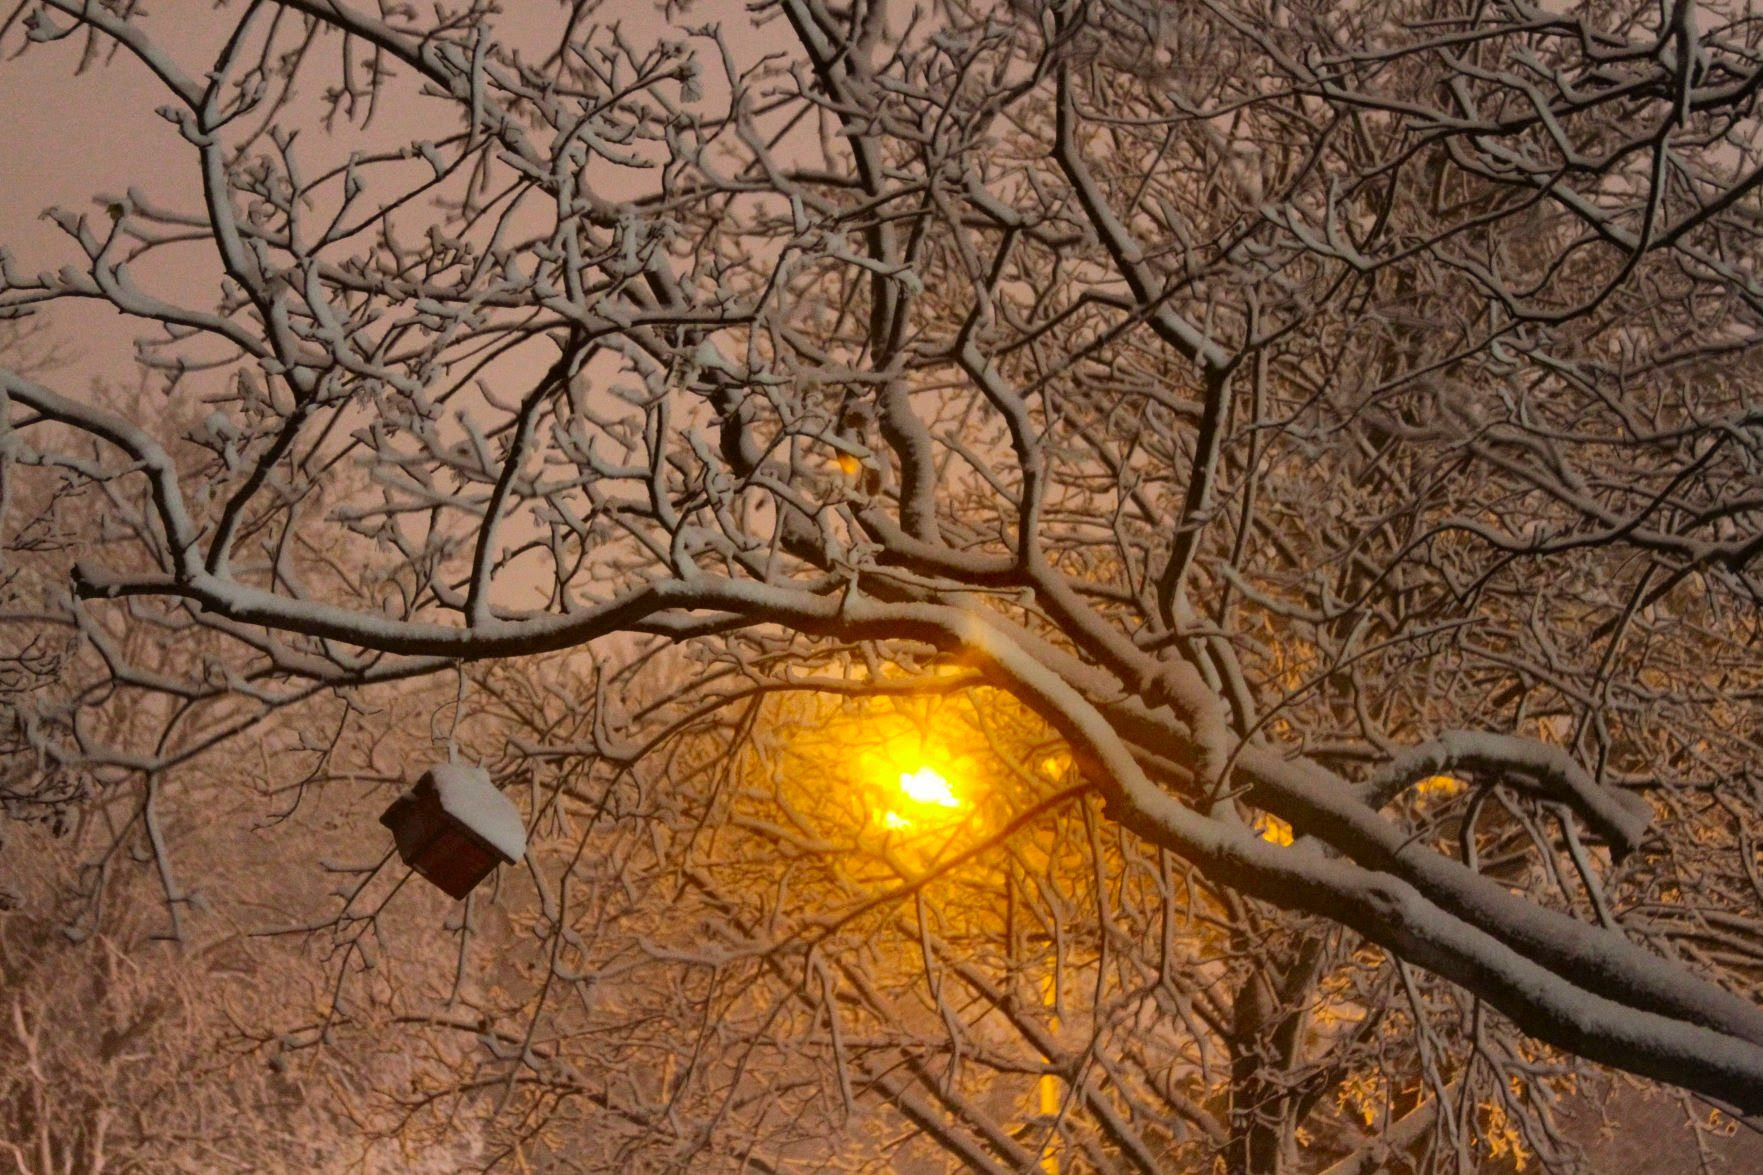 Wiconsin December 2009 Street Light and Trees Photo - soul-amp.com